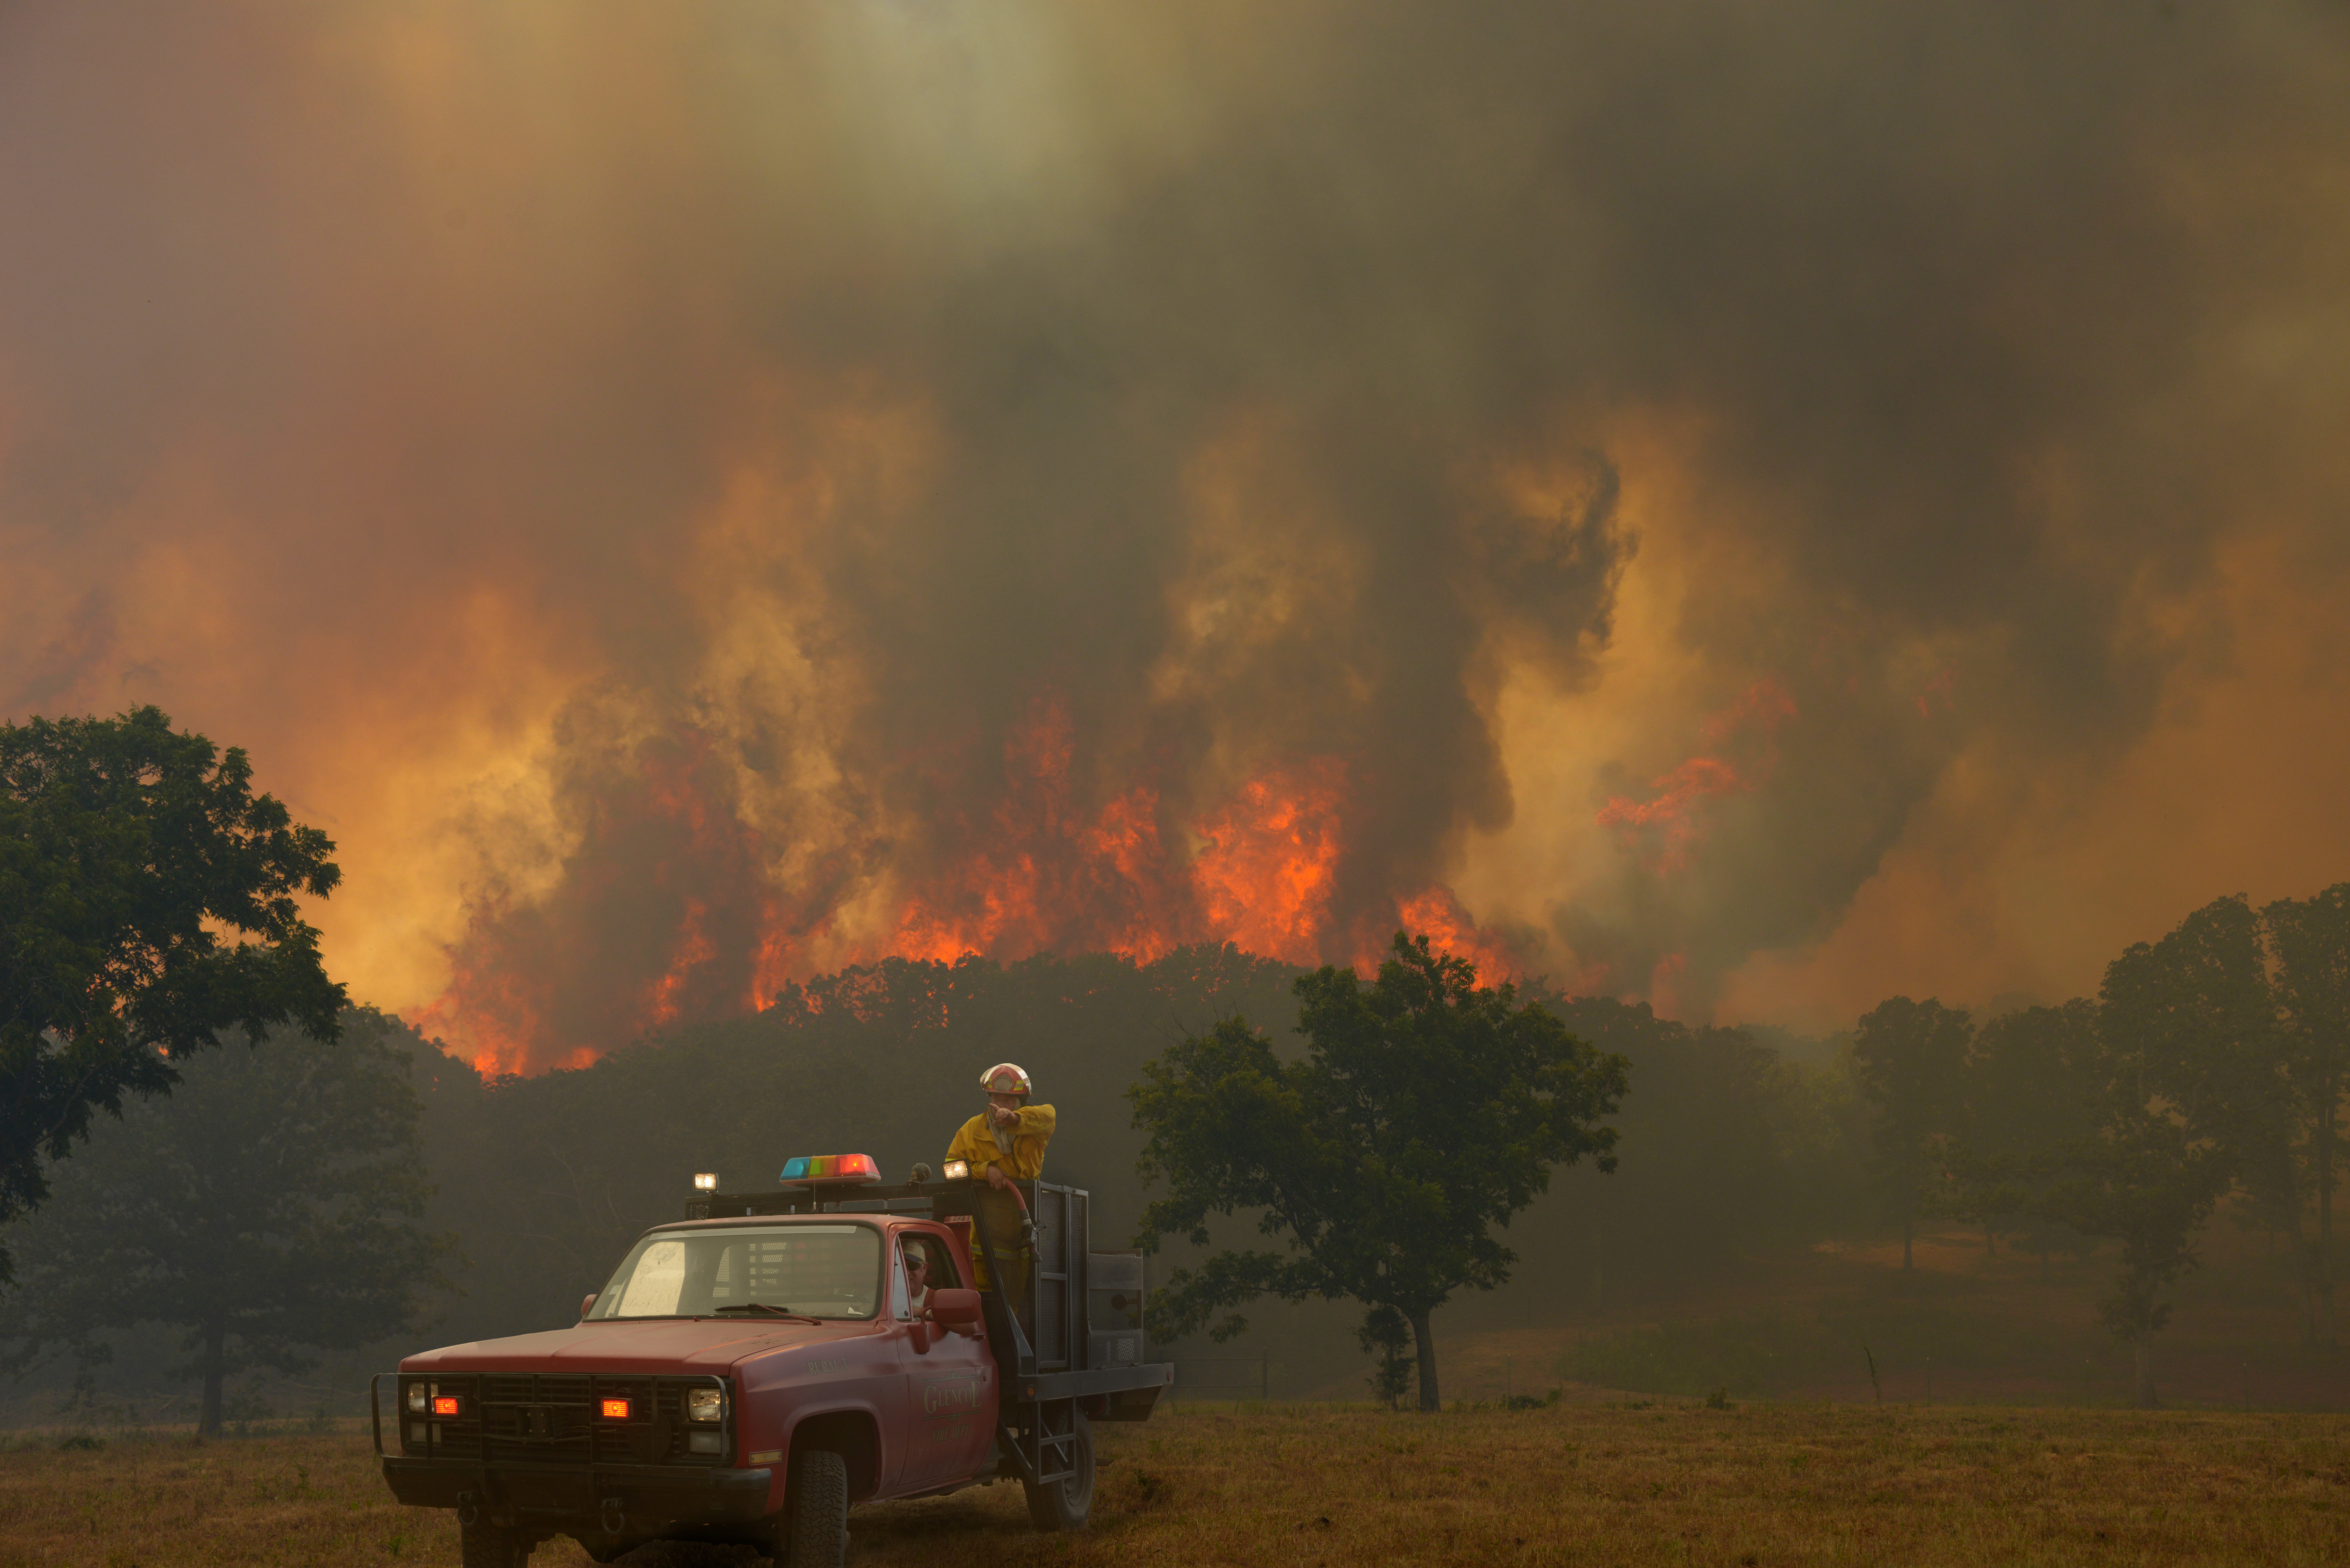 Wildfire: Preparing the Ranch and Farm